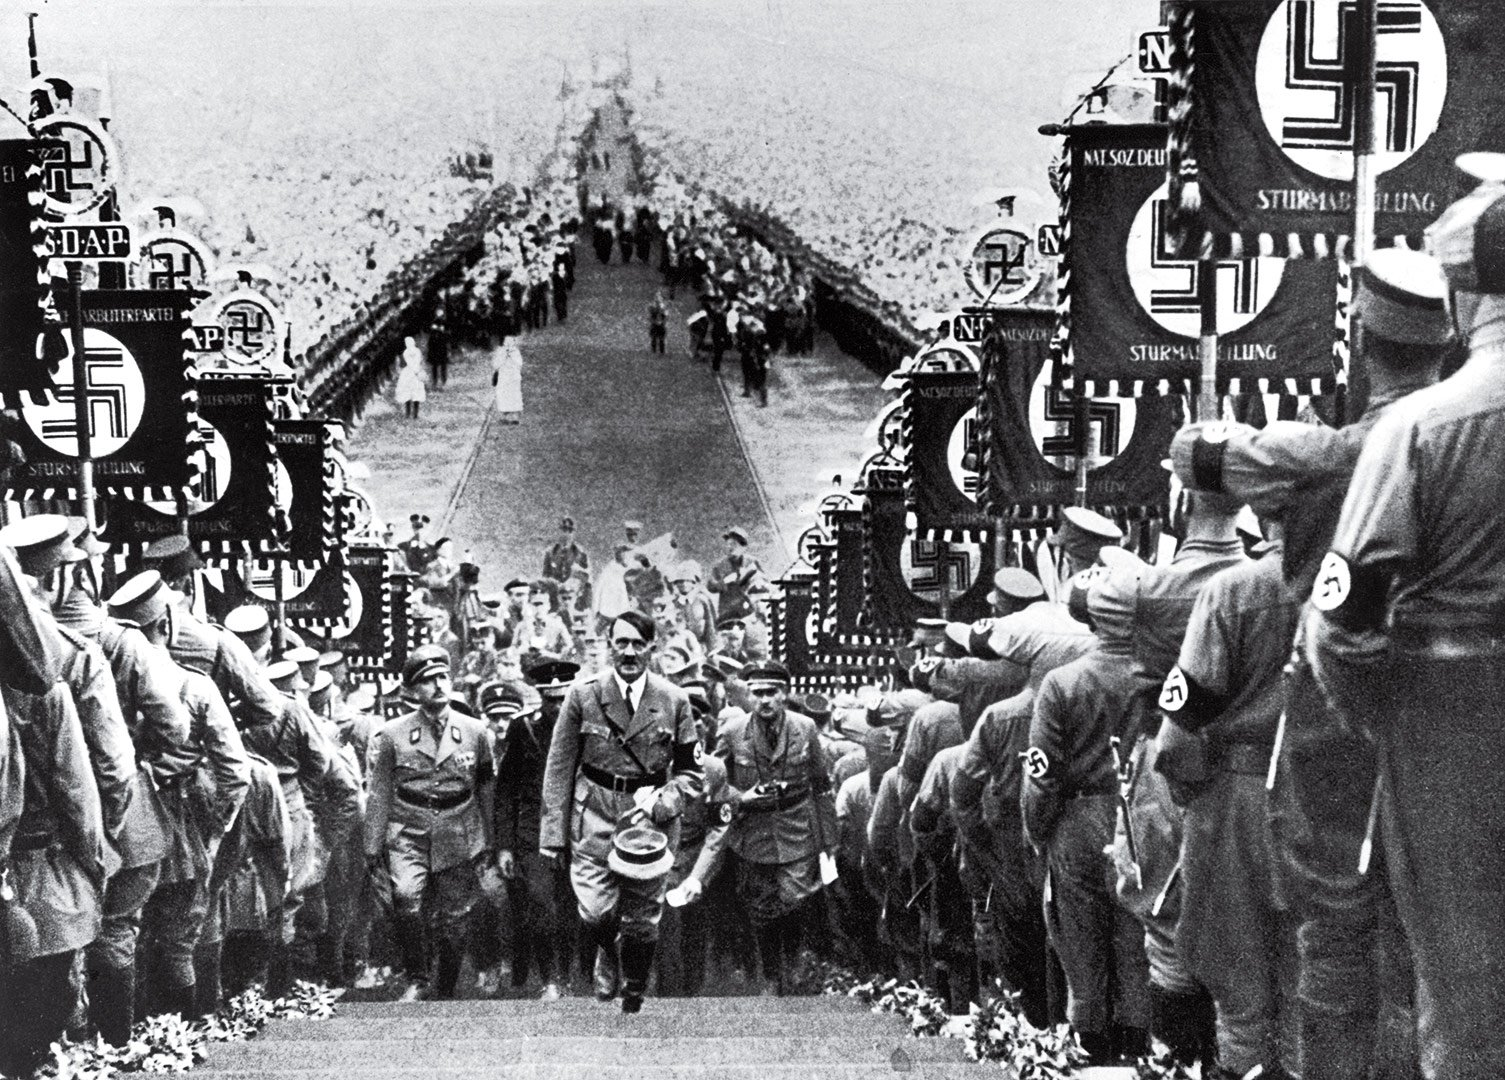 social revolution and unity volksgemeinschaft in nazi germany between 1933 and 1939 essay This essay argues that art was more effective in propagating nazi ideology in germany because it showed an explicit link between art and nazi ideology, therefore serving its main purpose: which was to implant fixed ideas and mould public opinions.